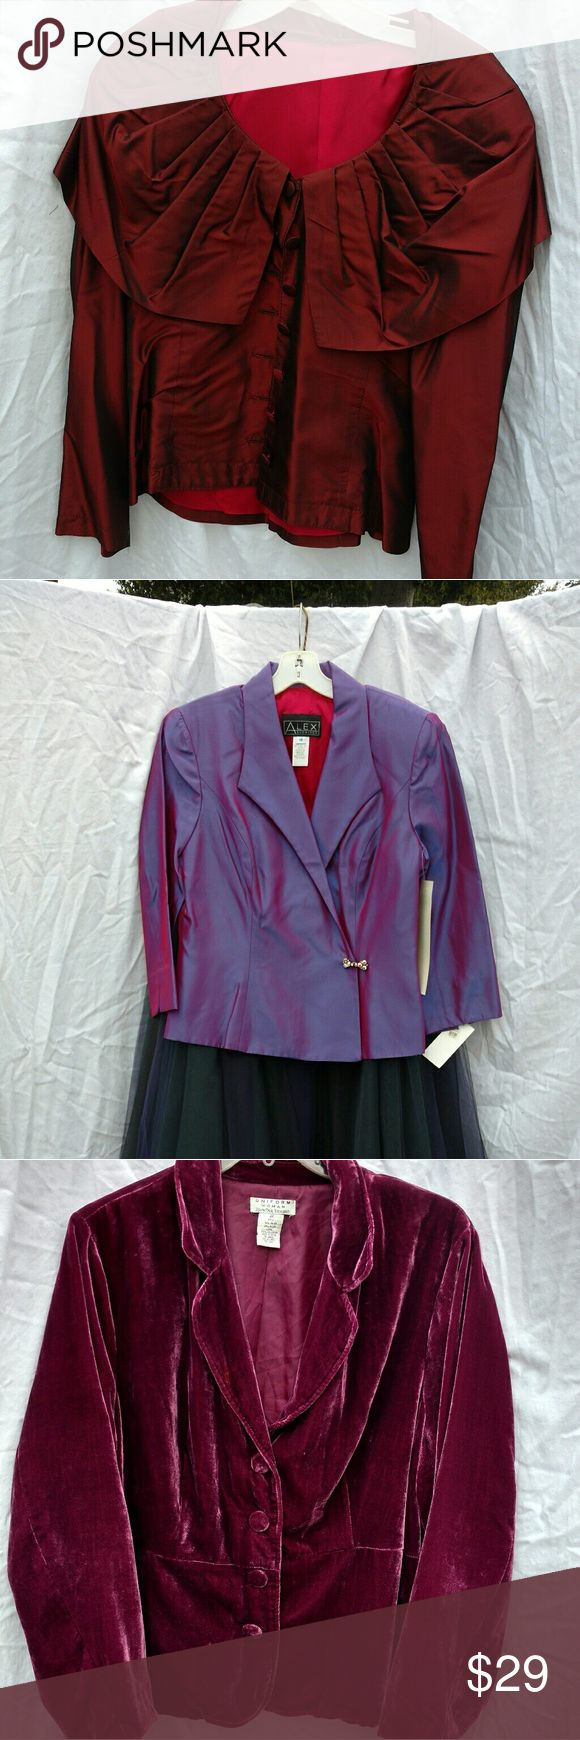 Womens evening jacket Purple with jewel closure Macy's Jackets & Coats